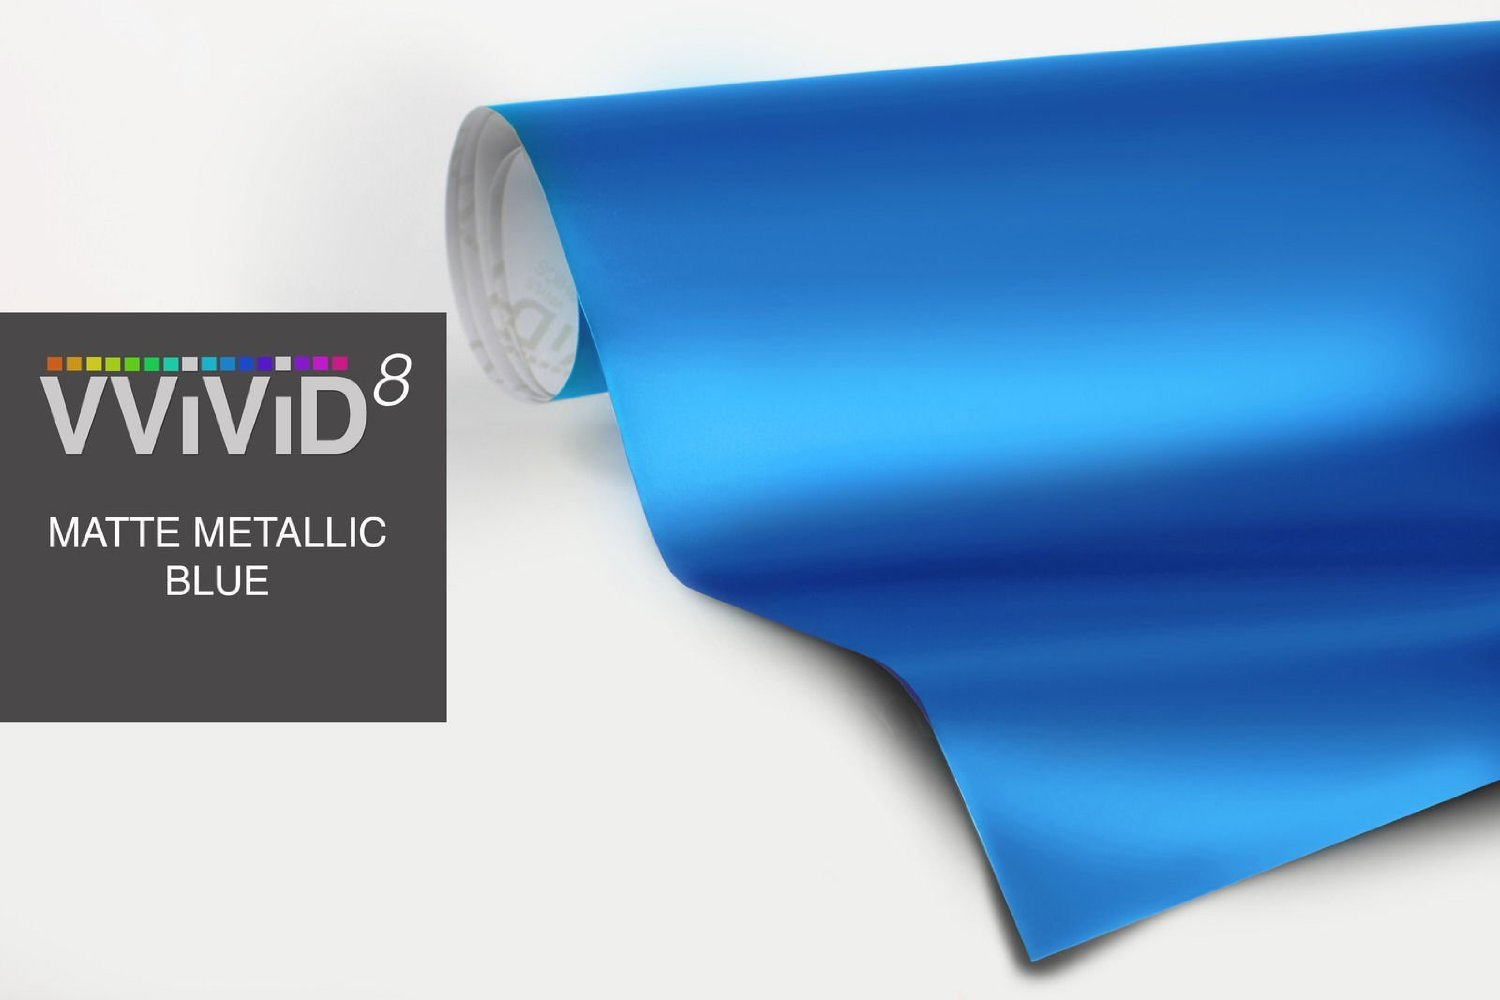 Matte Metallic Blue Vinyl Wrap Roll With VViViD XPO Air Release Technology 5ft x 5ft